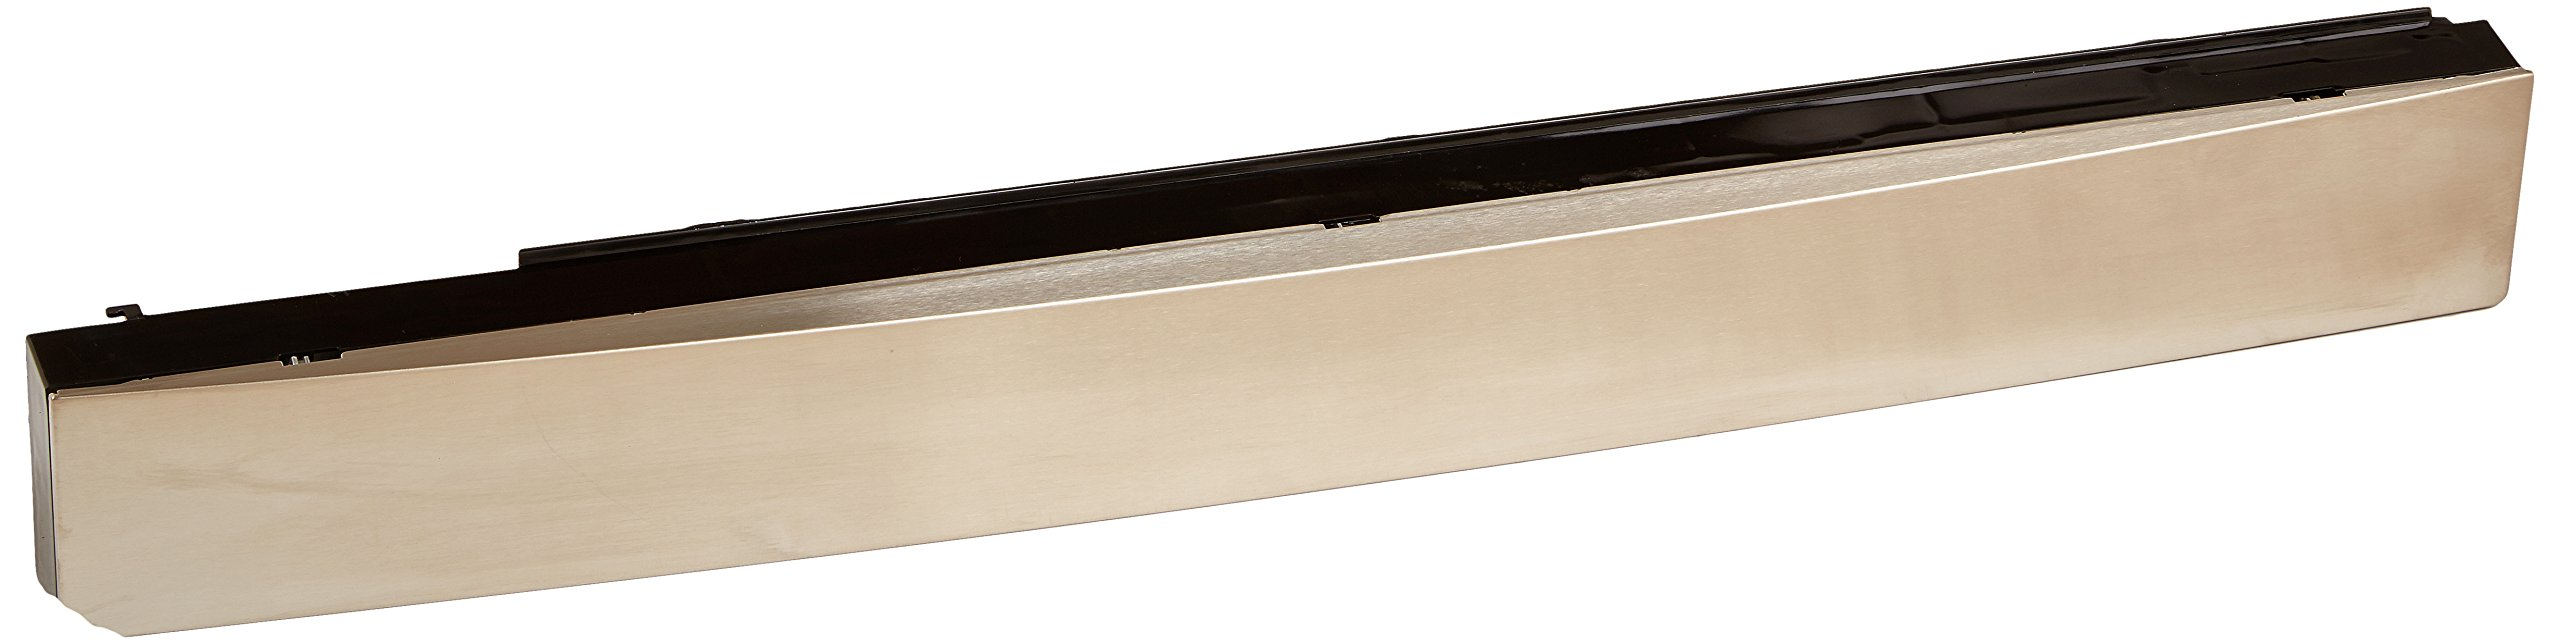 General Electric WB07X11385 Range/Stove/Oven Grille by GE